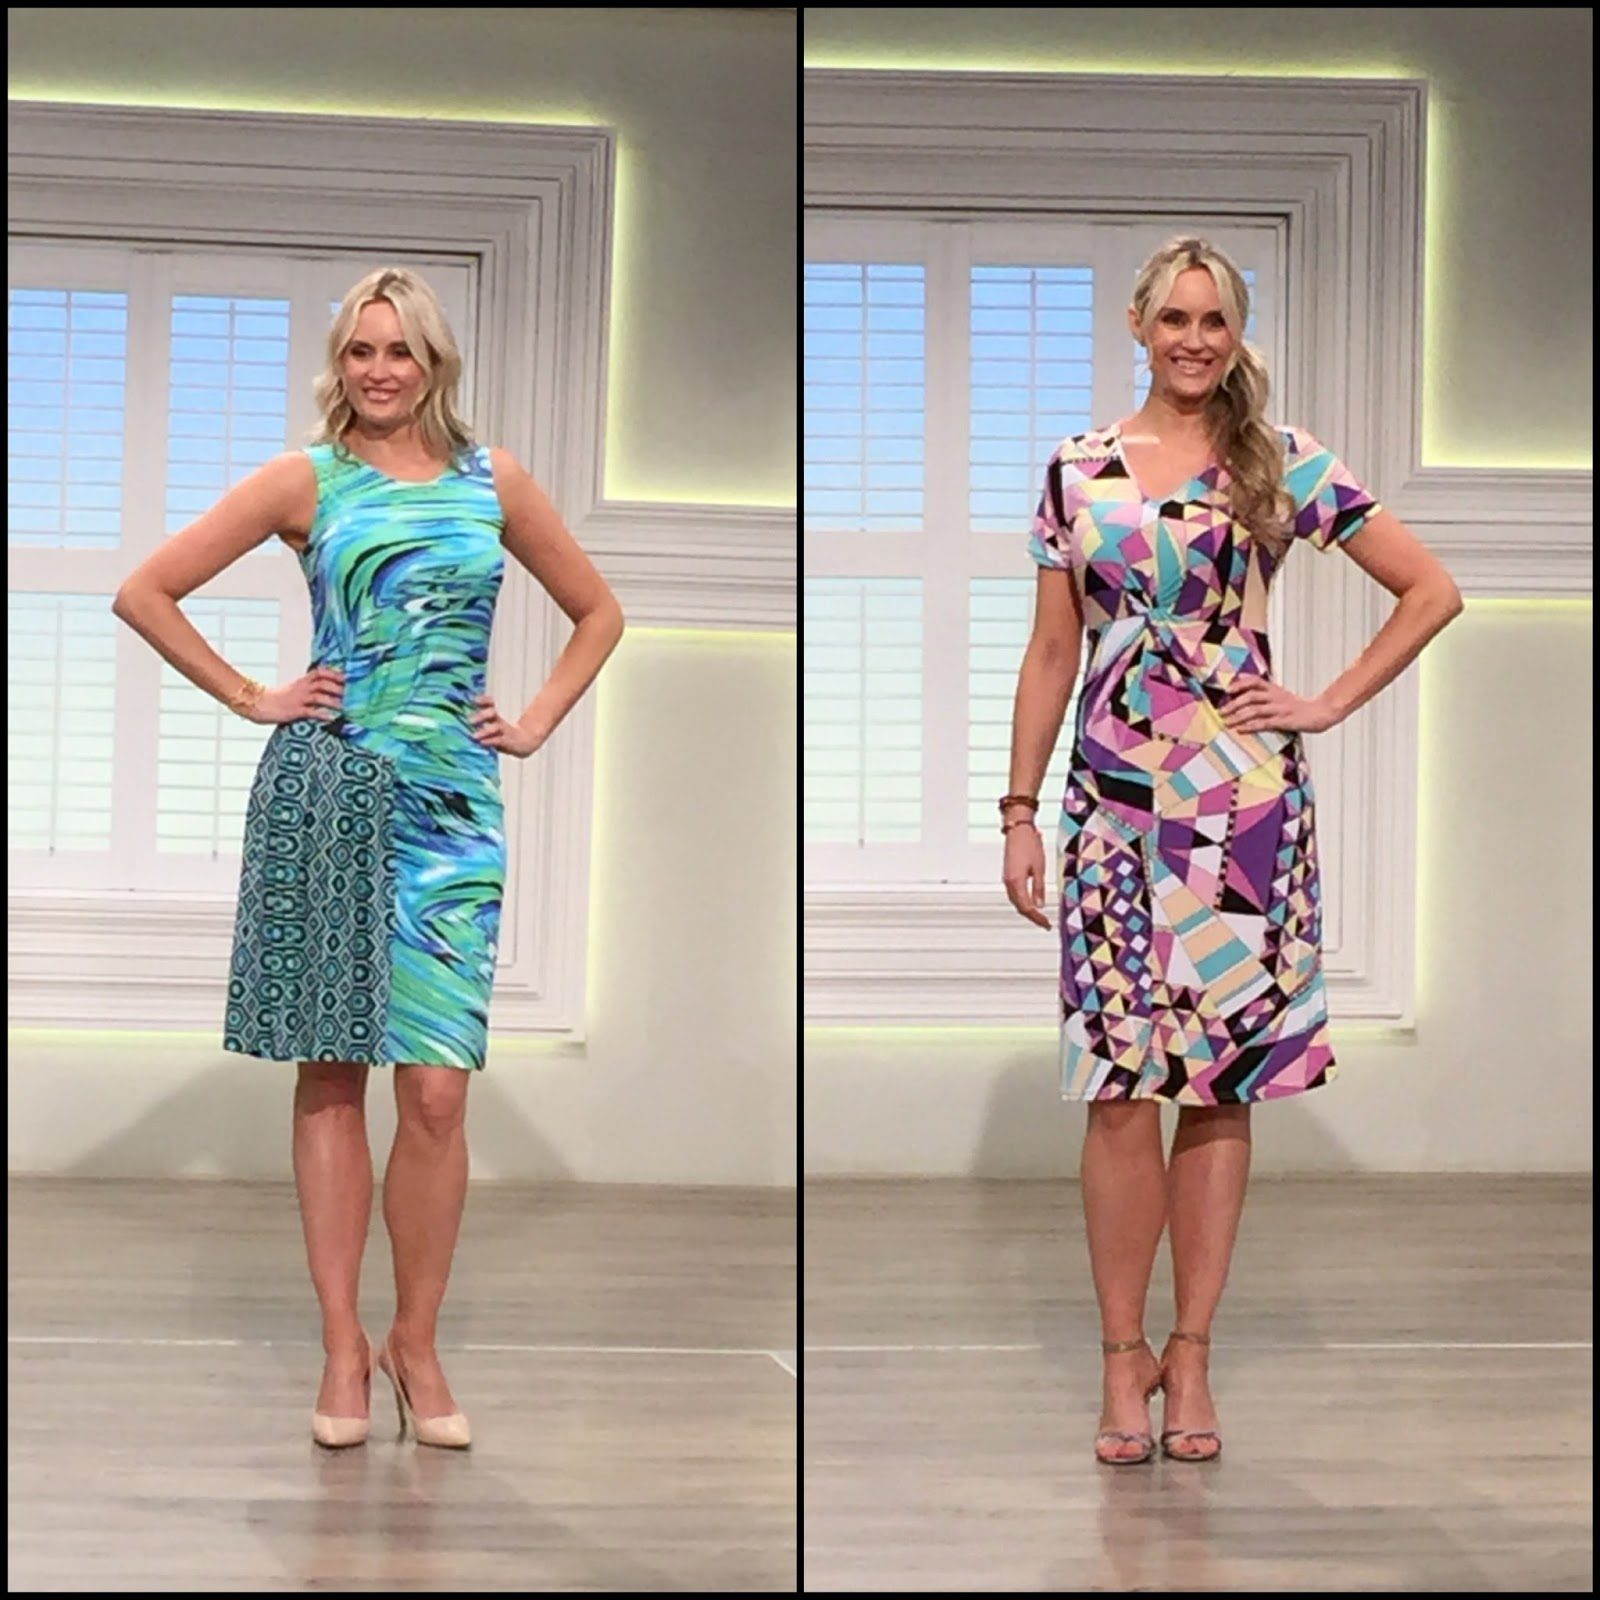 Nv nick verreosqvc uk and qvc italy may 2016 nick verreos model in nv nick verreos qvc uk printed knit jersey dresses ccuart Gallery